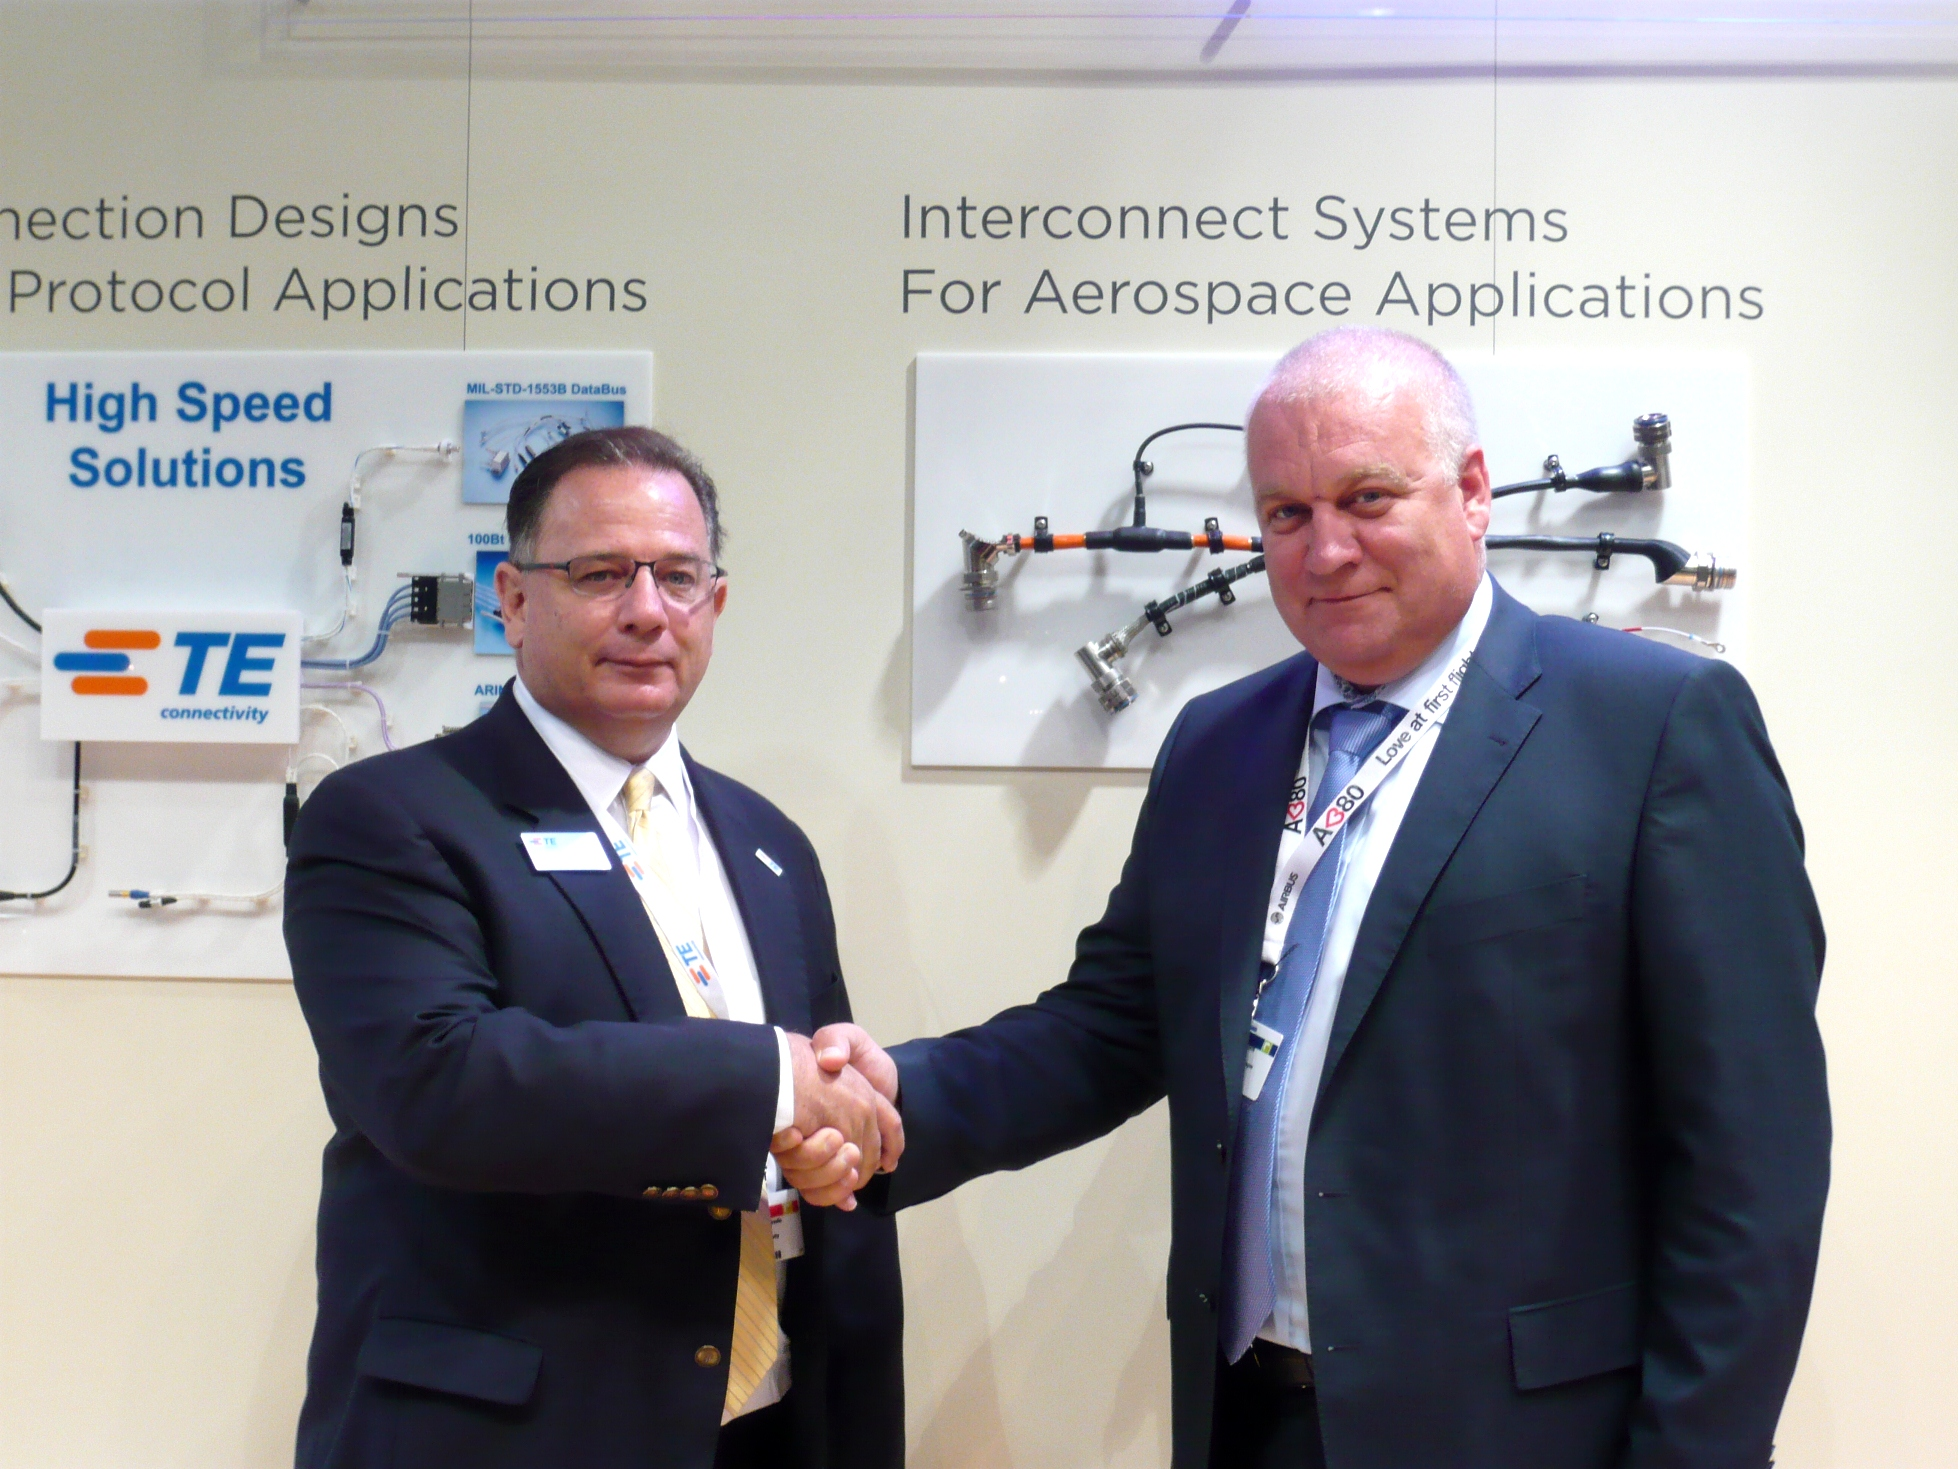 Frank Breslin (left), Vice President Global Sales, TE Connectivity - Aerospace, Defense & Marine, and Valery Shardin (right), President, Promtechkomplekt Co. Ltd. announce a new licensing agreement at Farnborough Airshow 2012.